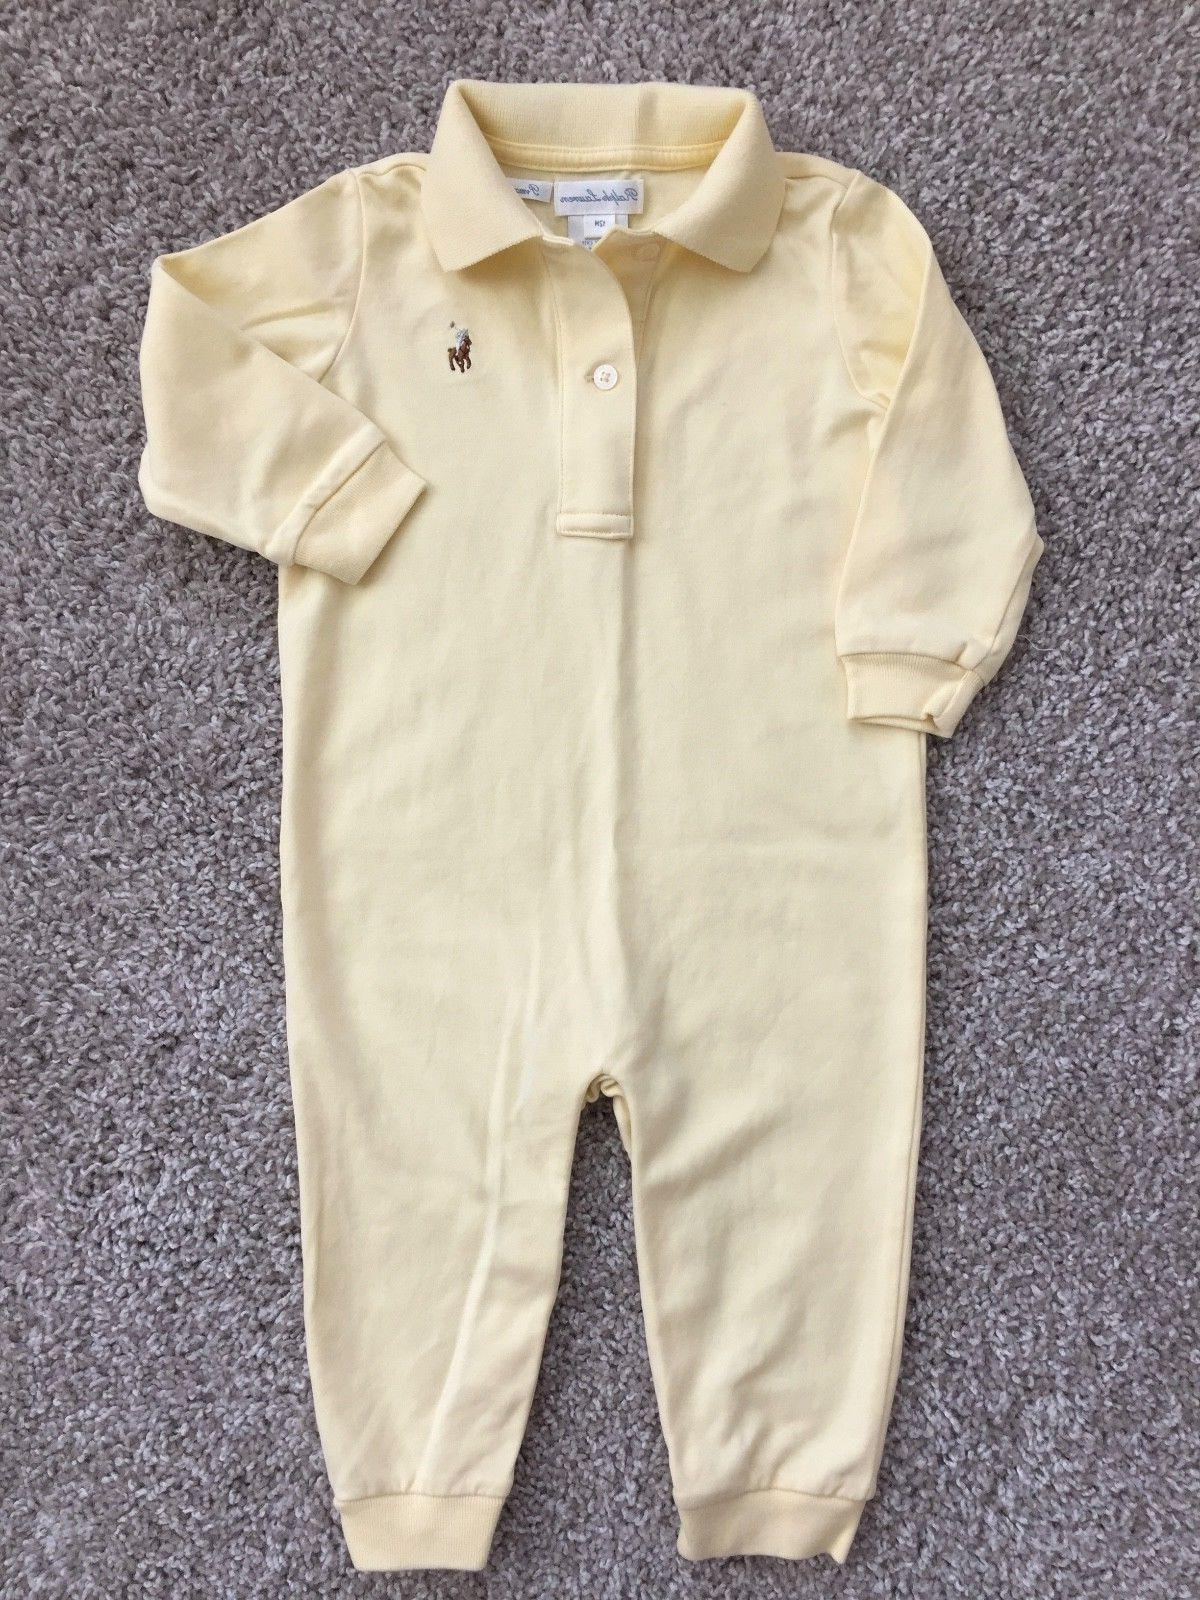 12 Months Ralph Lauren Baby Boy Girl Yellow Coverall Bodysui